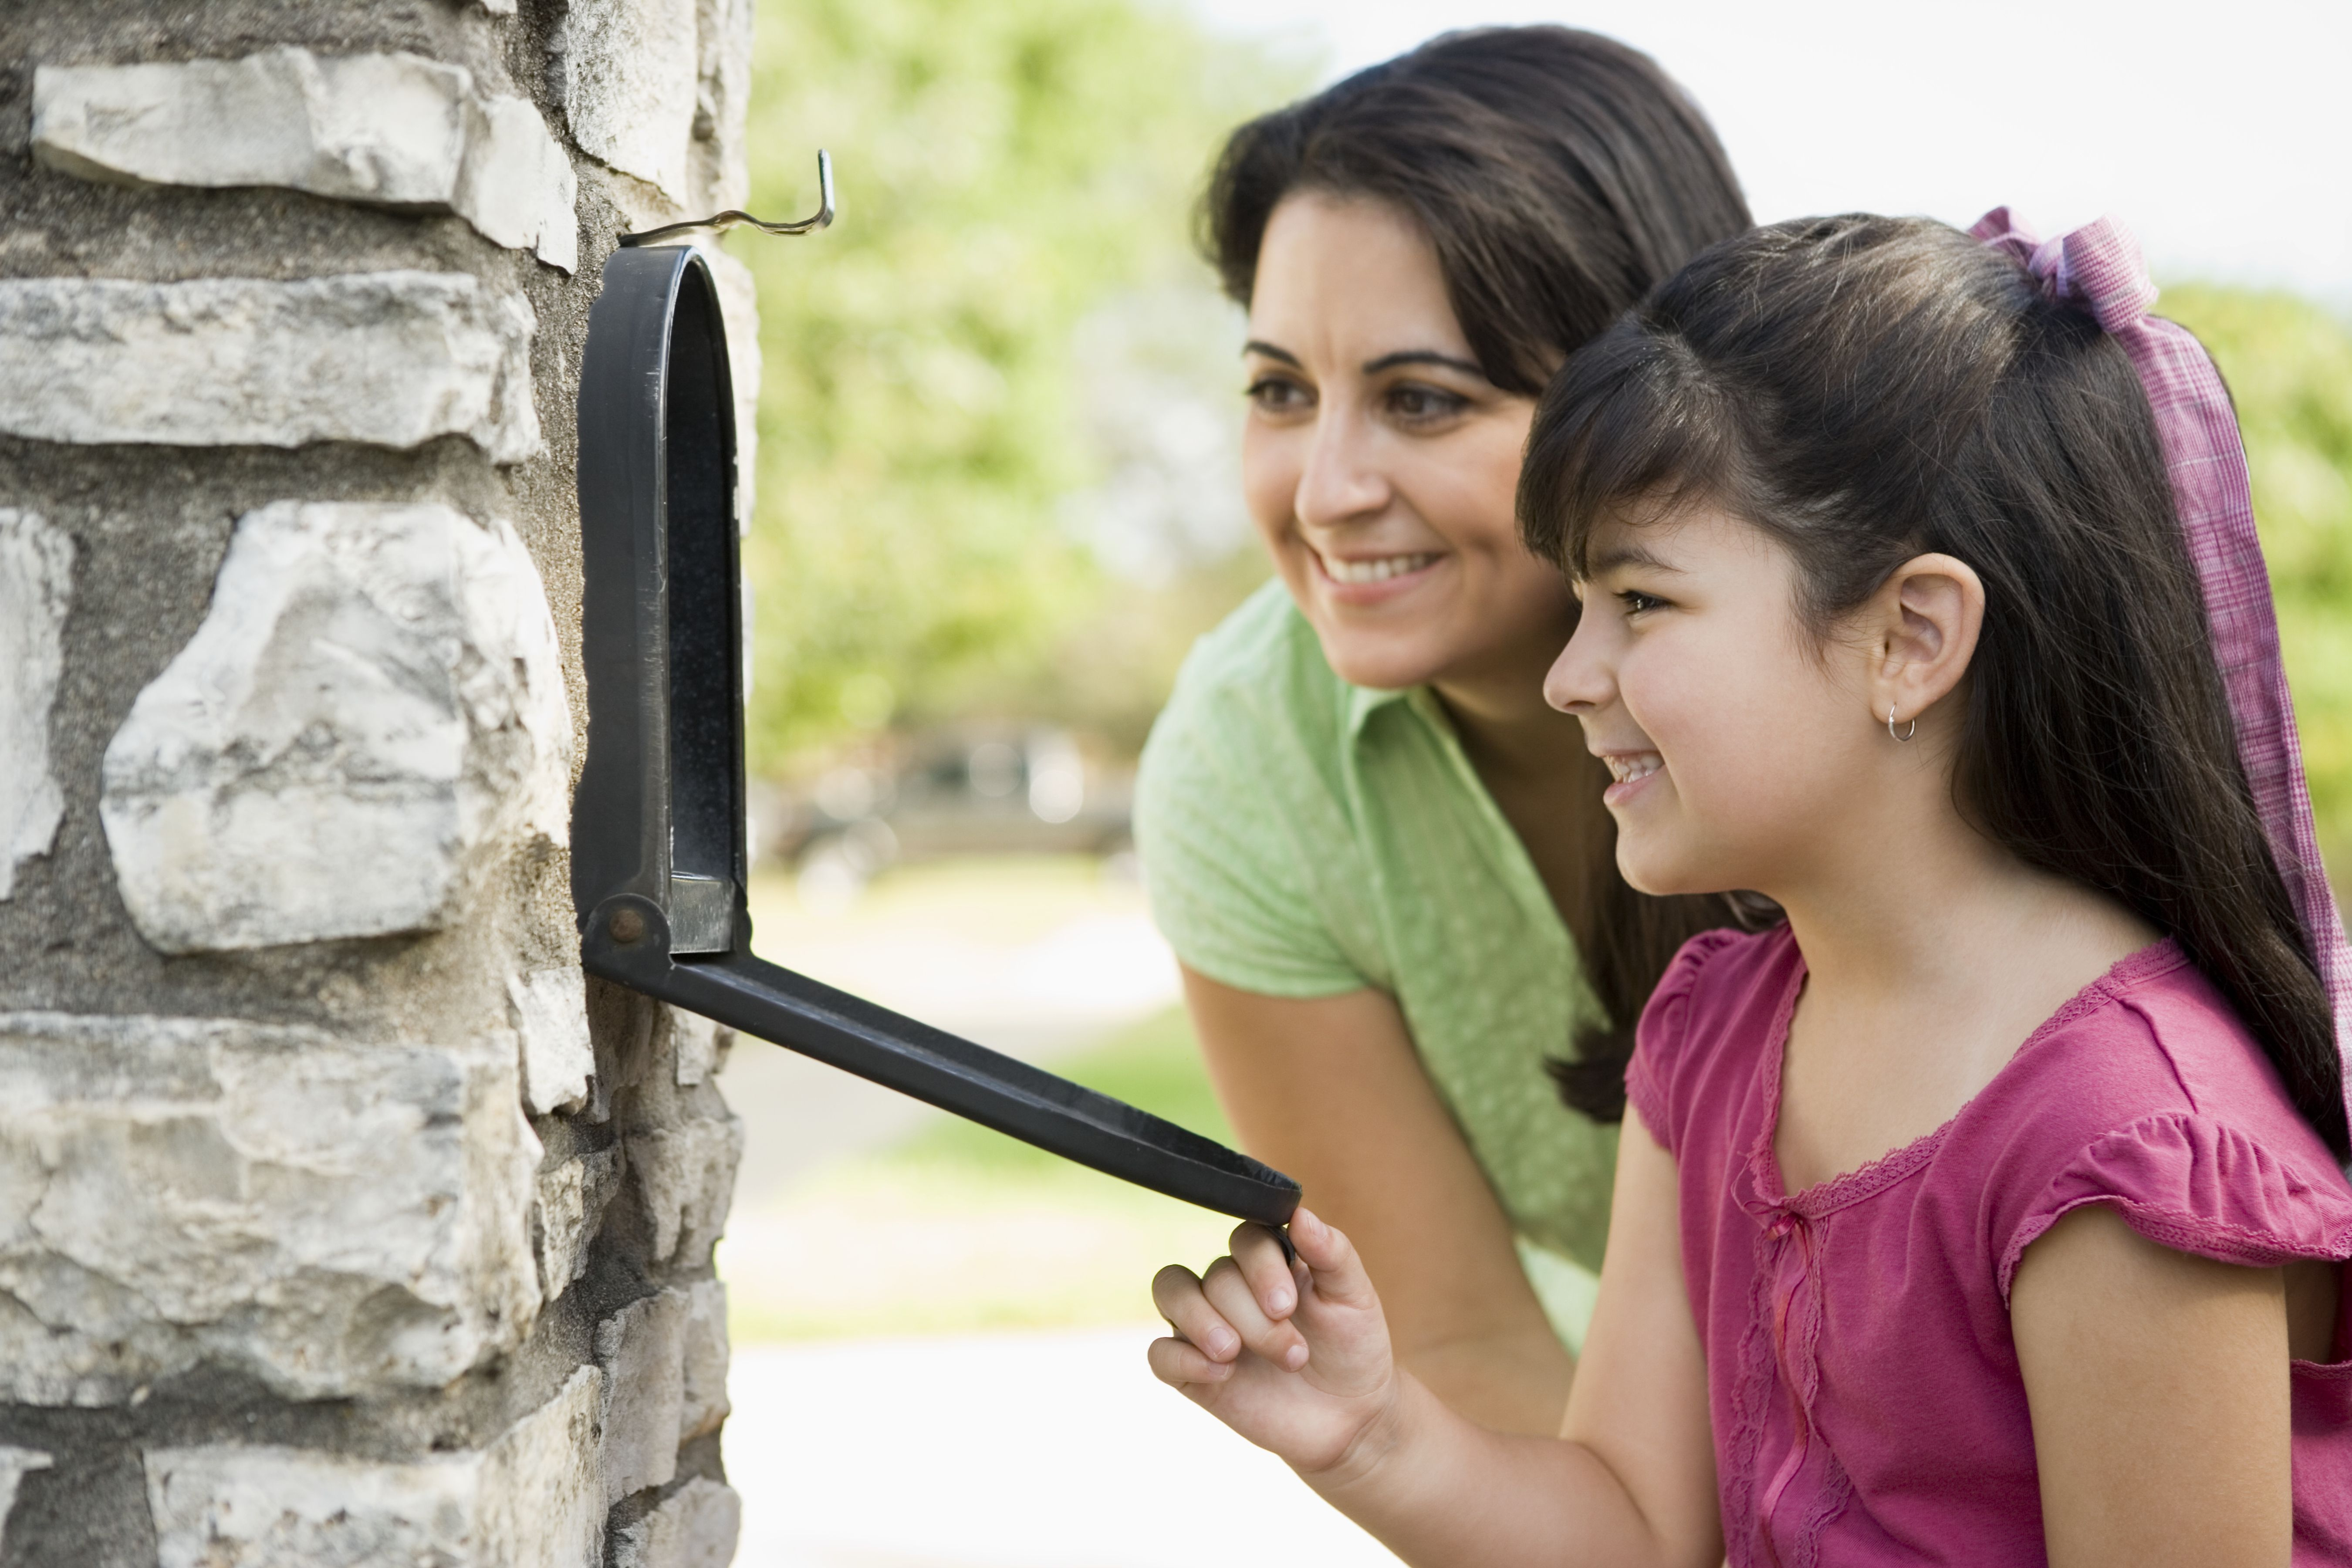 Mother and Daughter Looking into Mailbox